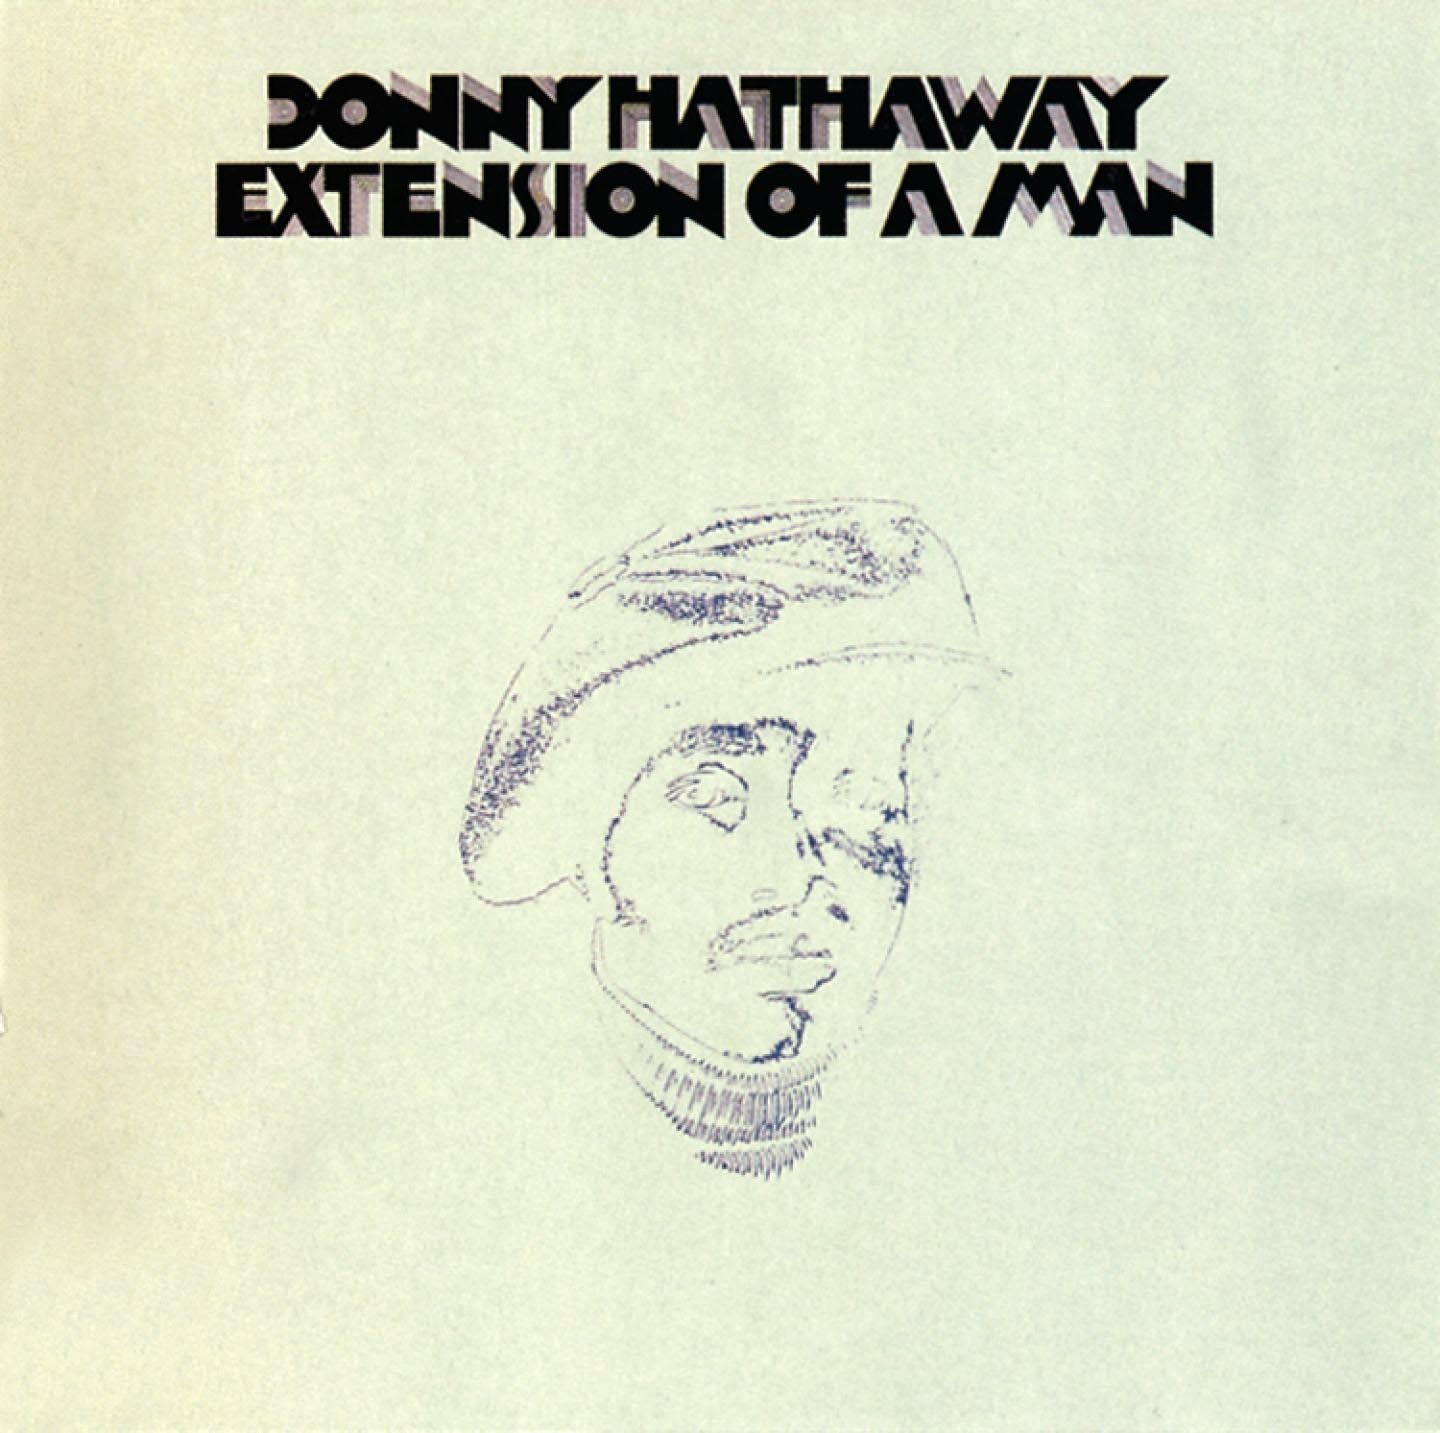 Donny Hathaway Extension Of A Man 01